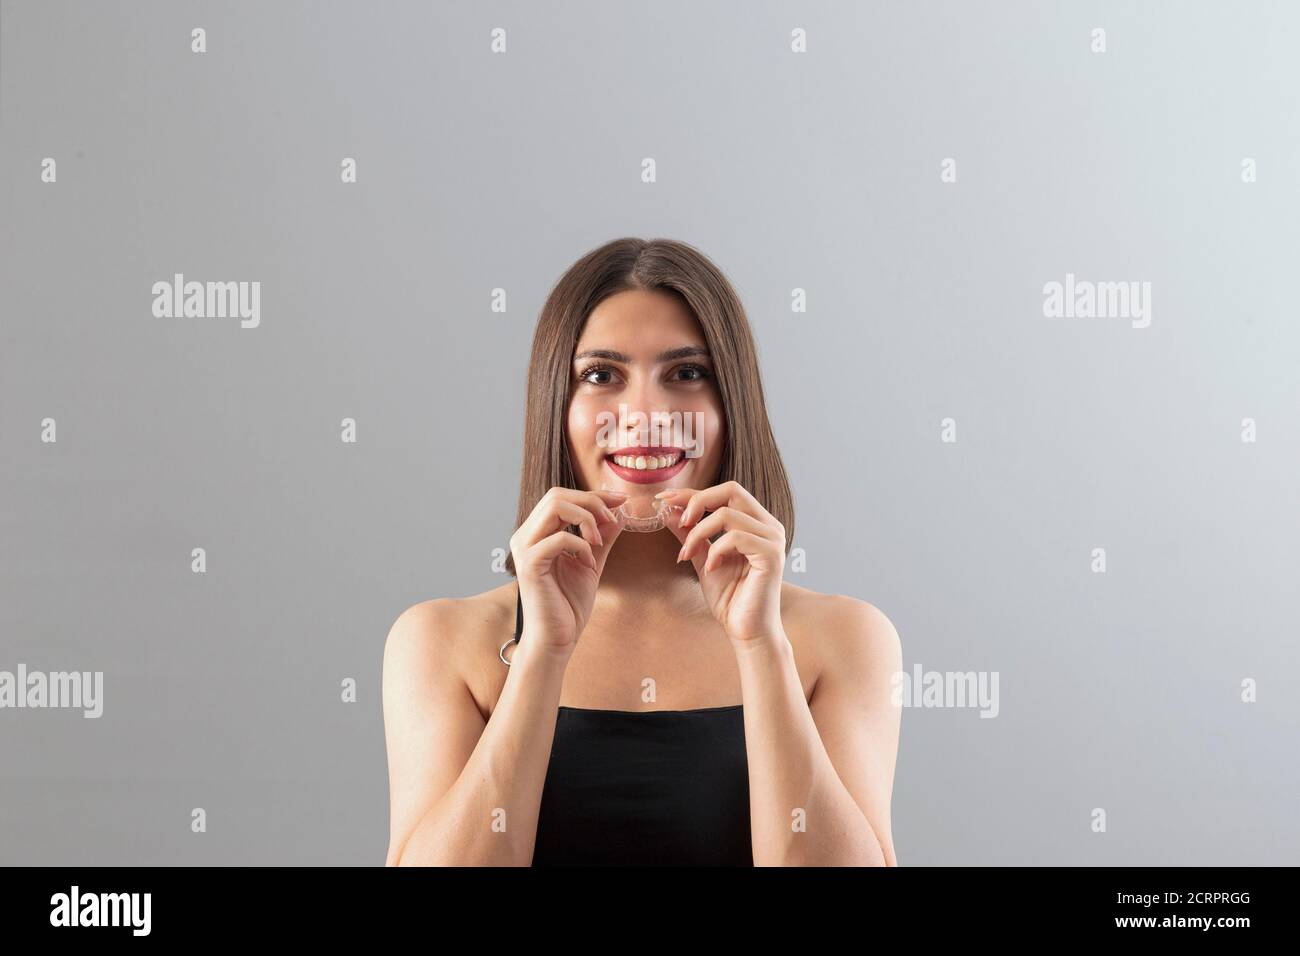 Beautiful smiling Turkish woman is holding an invisalign bracer, Isolated studio shot with copy space Stock Photo